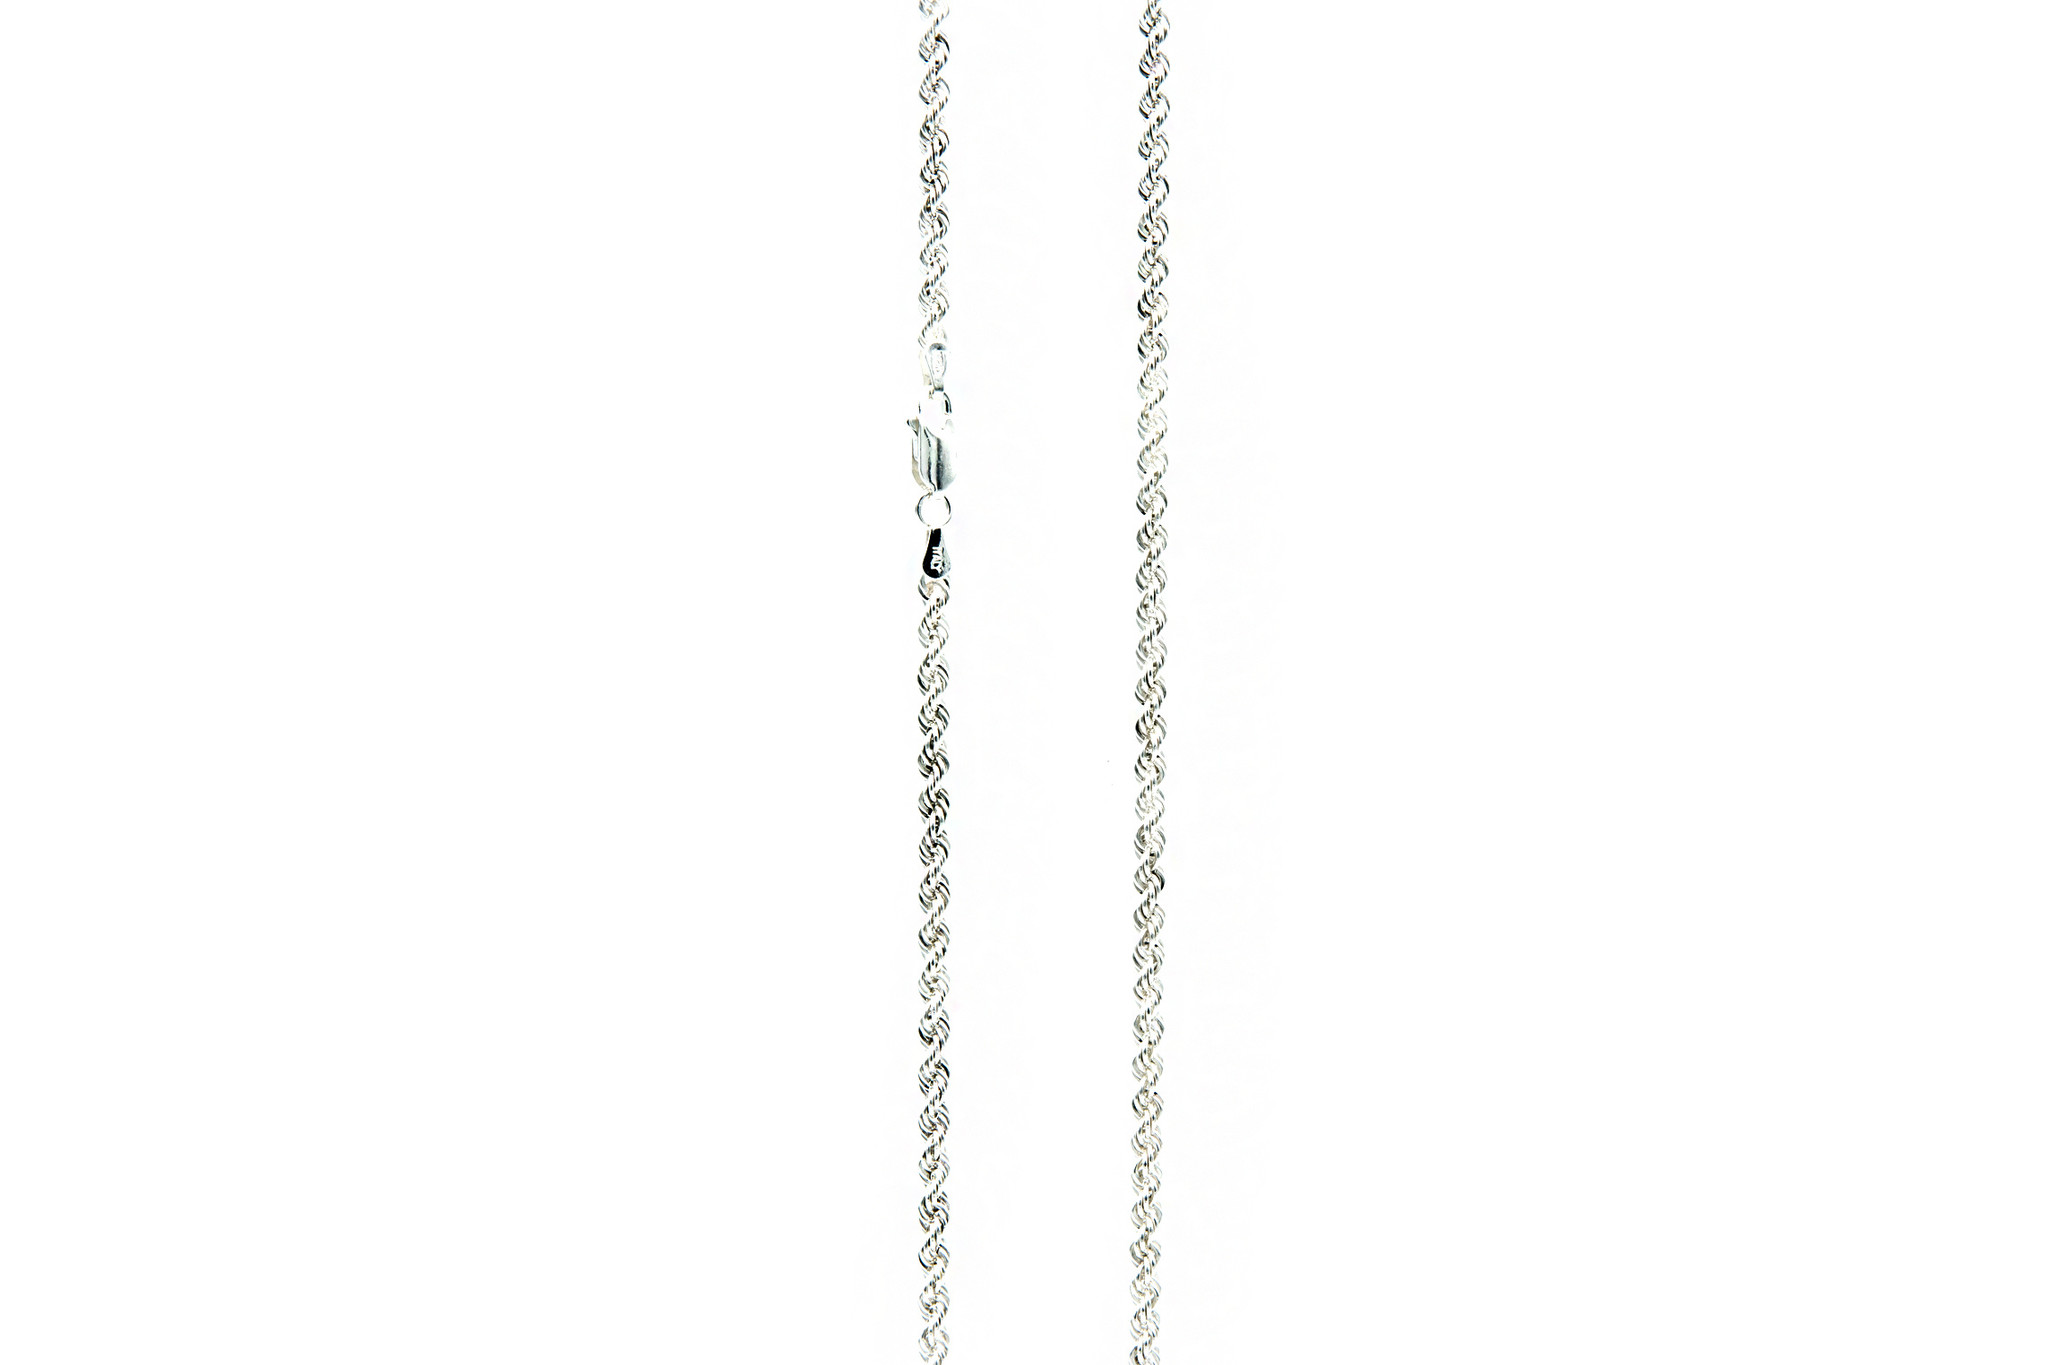 Ketting rope chain zilver-2